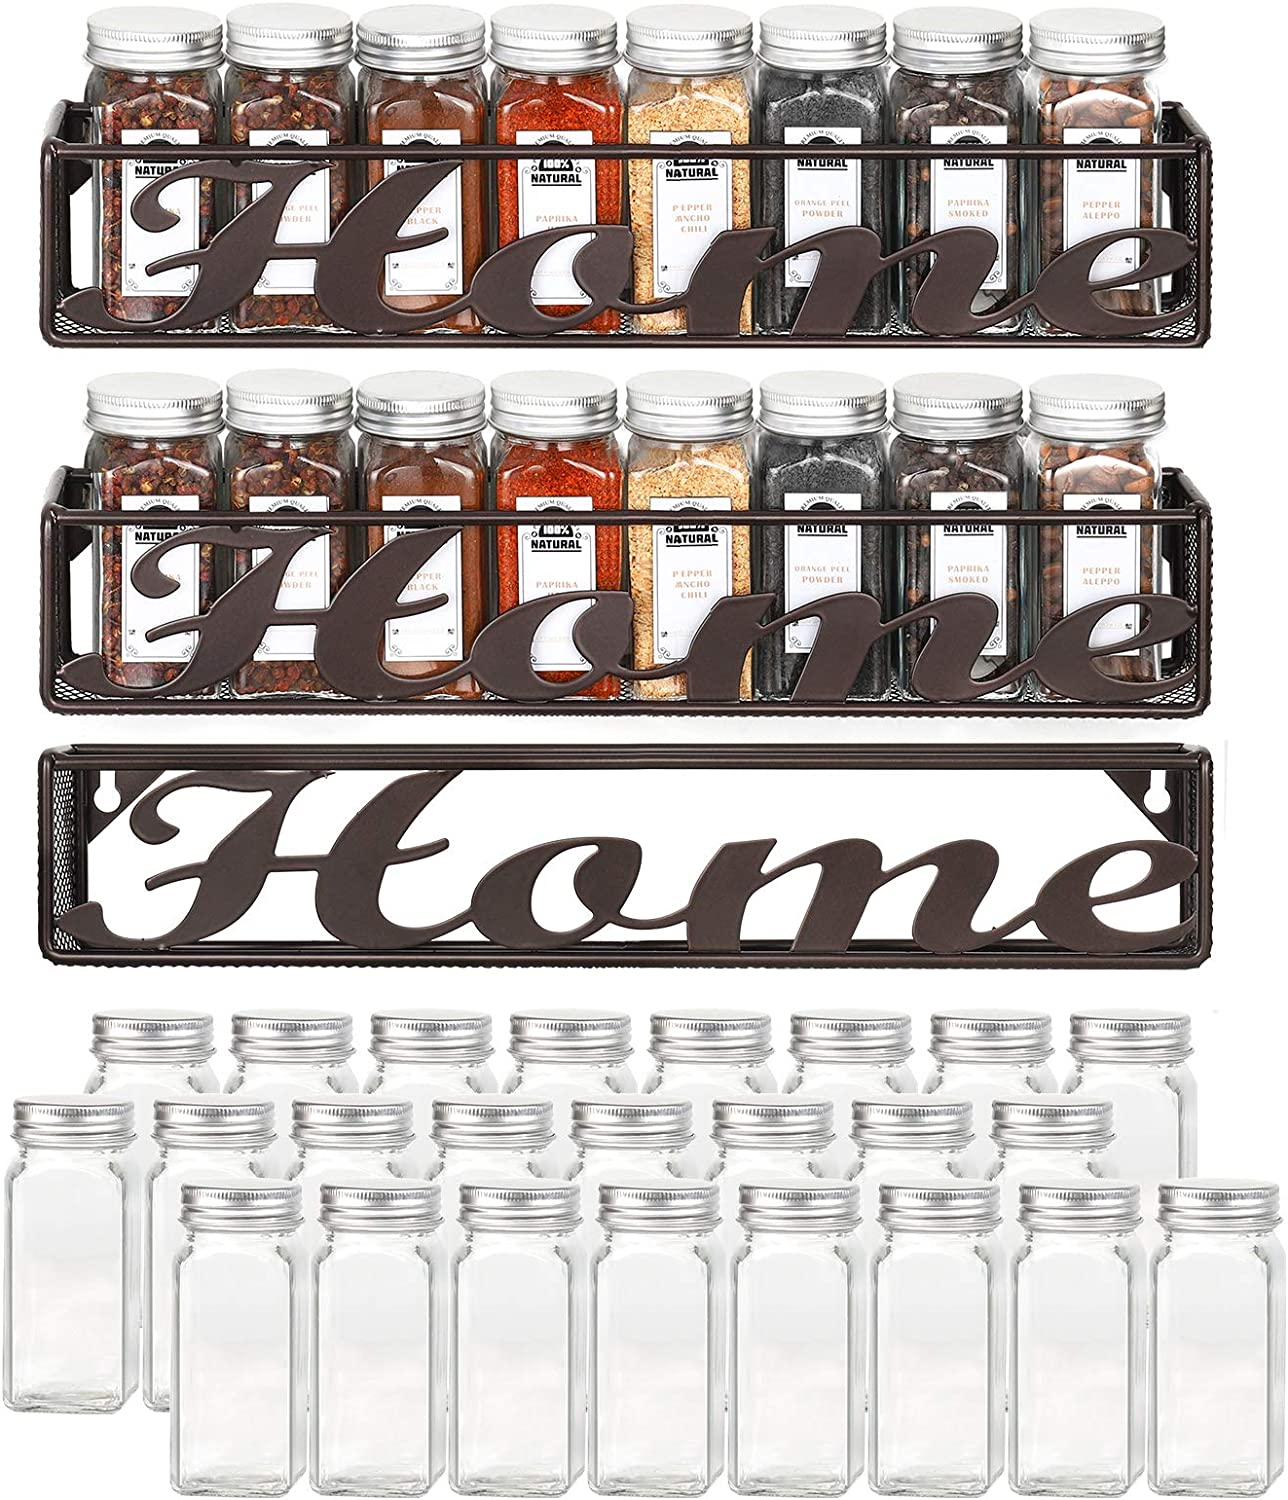 MOOACE Spice Rack with 24 Glass Spice Jars/Bottles, Home Sign Wall Mounted Spice Shelves Organizer Set of 3, Bronze